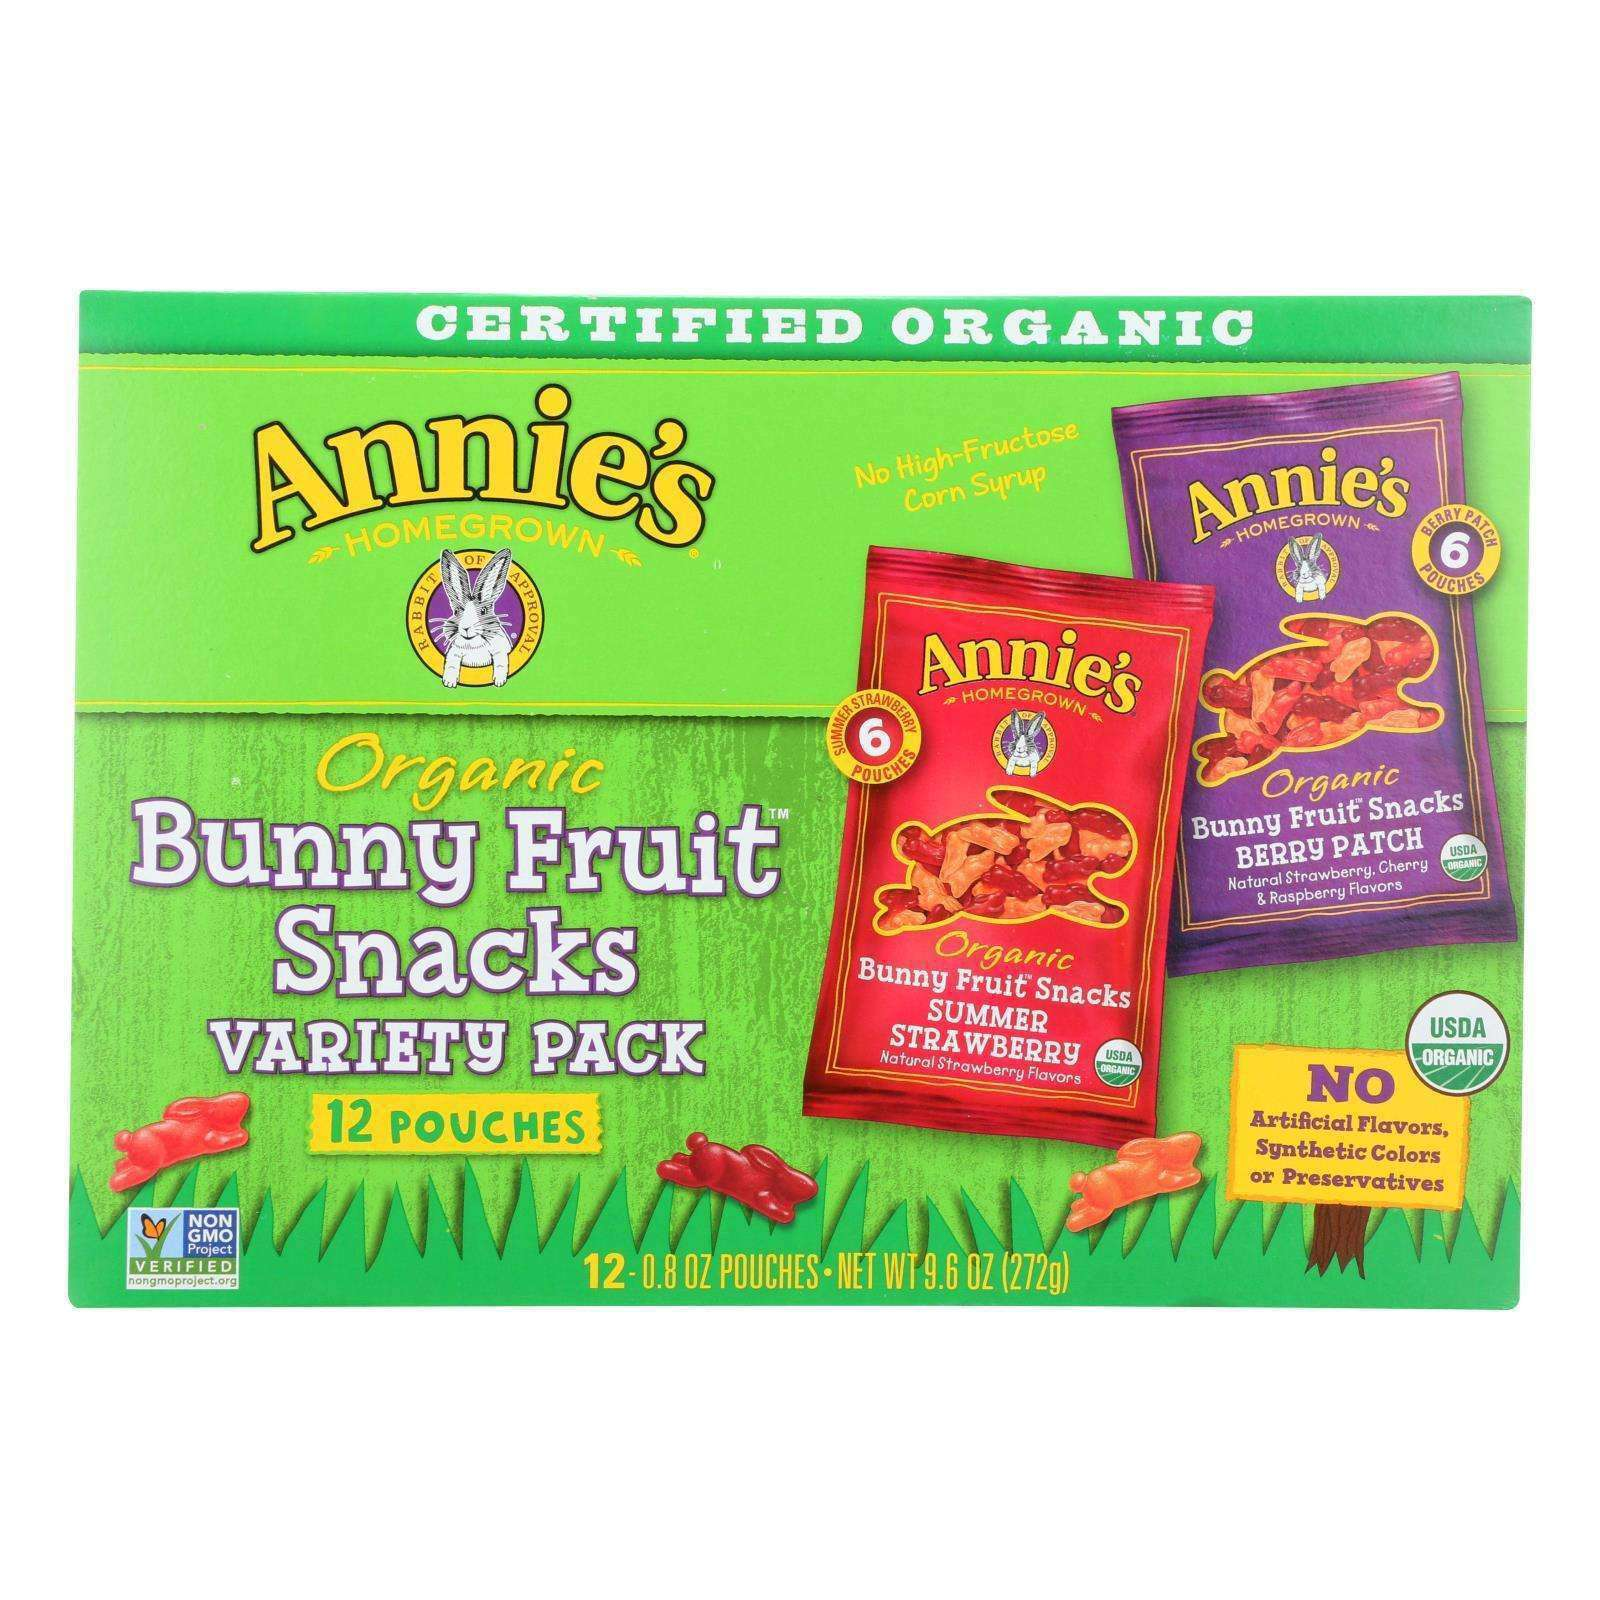 Annie's Homegrown Organic Bunny Fruit Snacks Variety Pack - Case Of 12 - 9.6 Oz. - BeeGreen